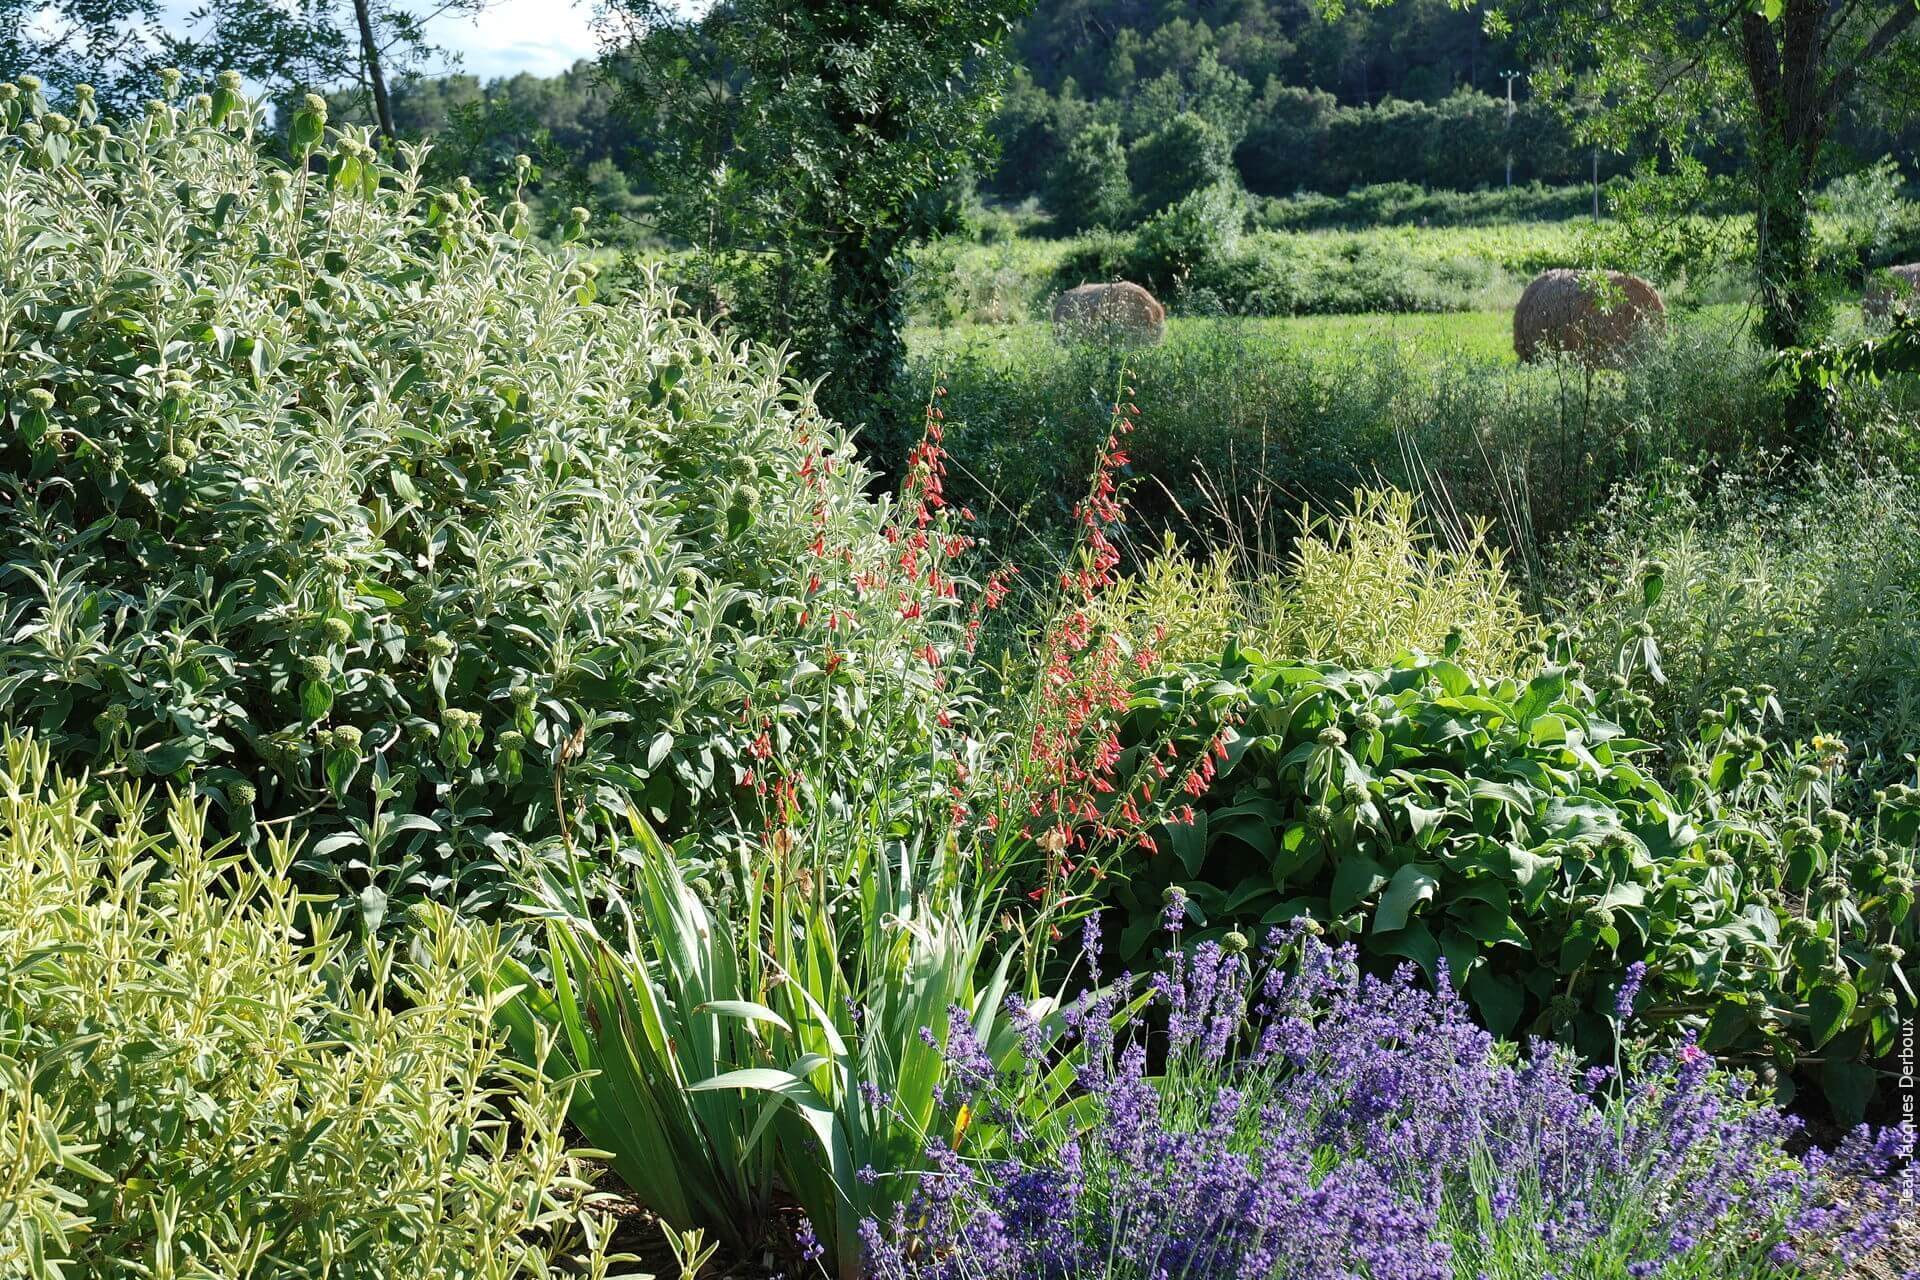 Jardin sec, jardin sans arrosage, collection de phlomis, lavande, penstemon barbatus.